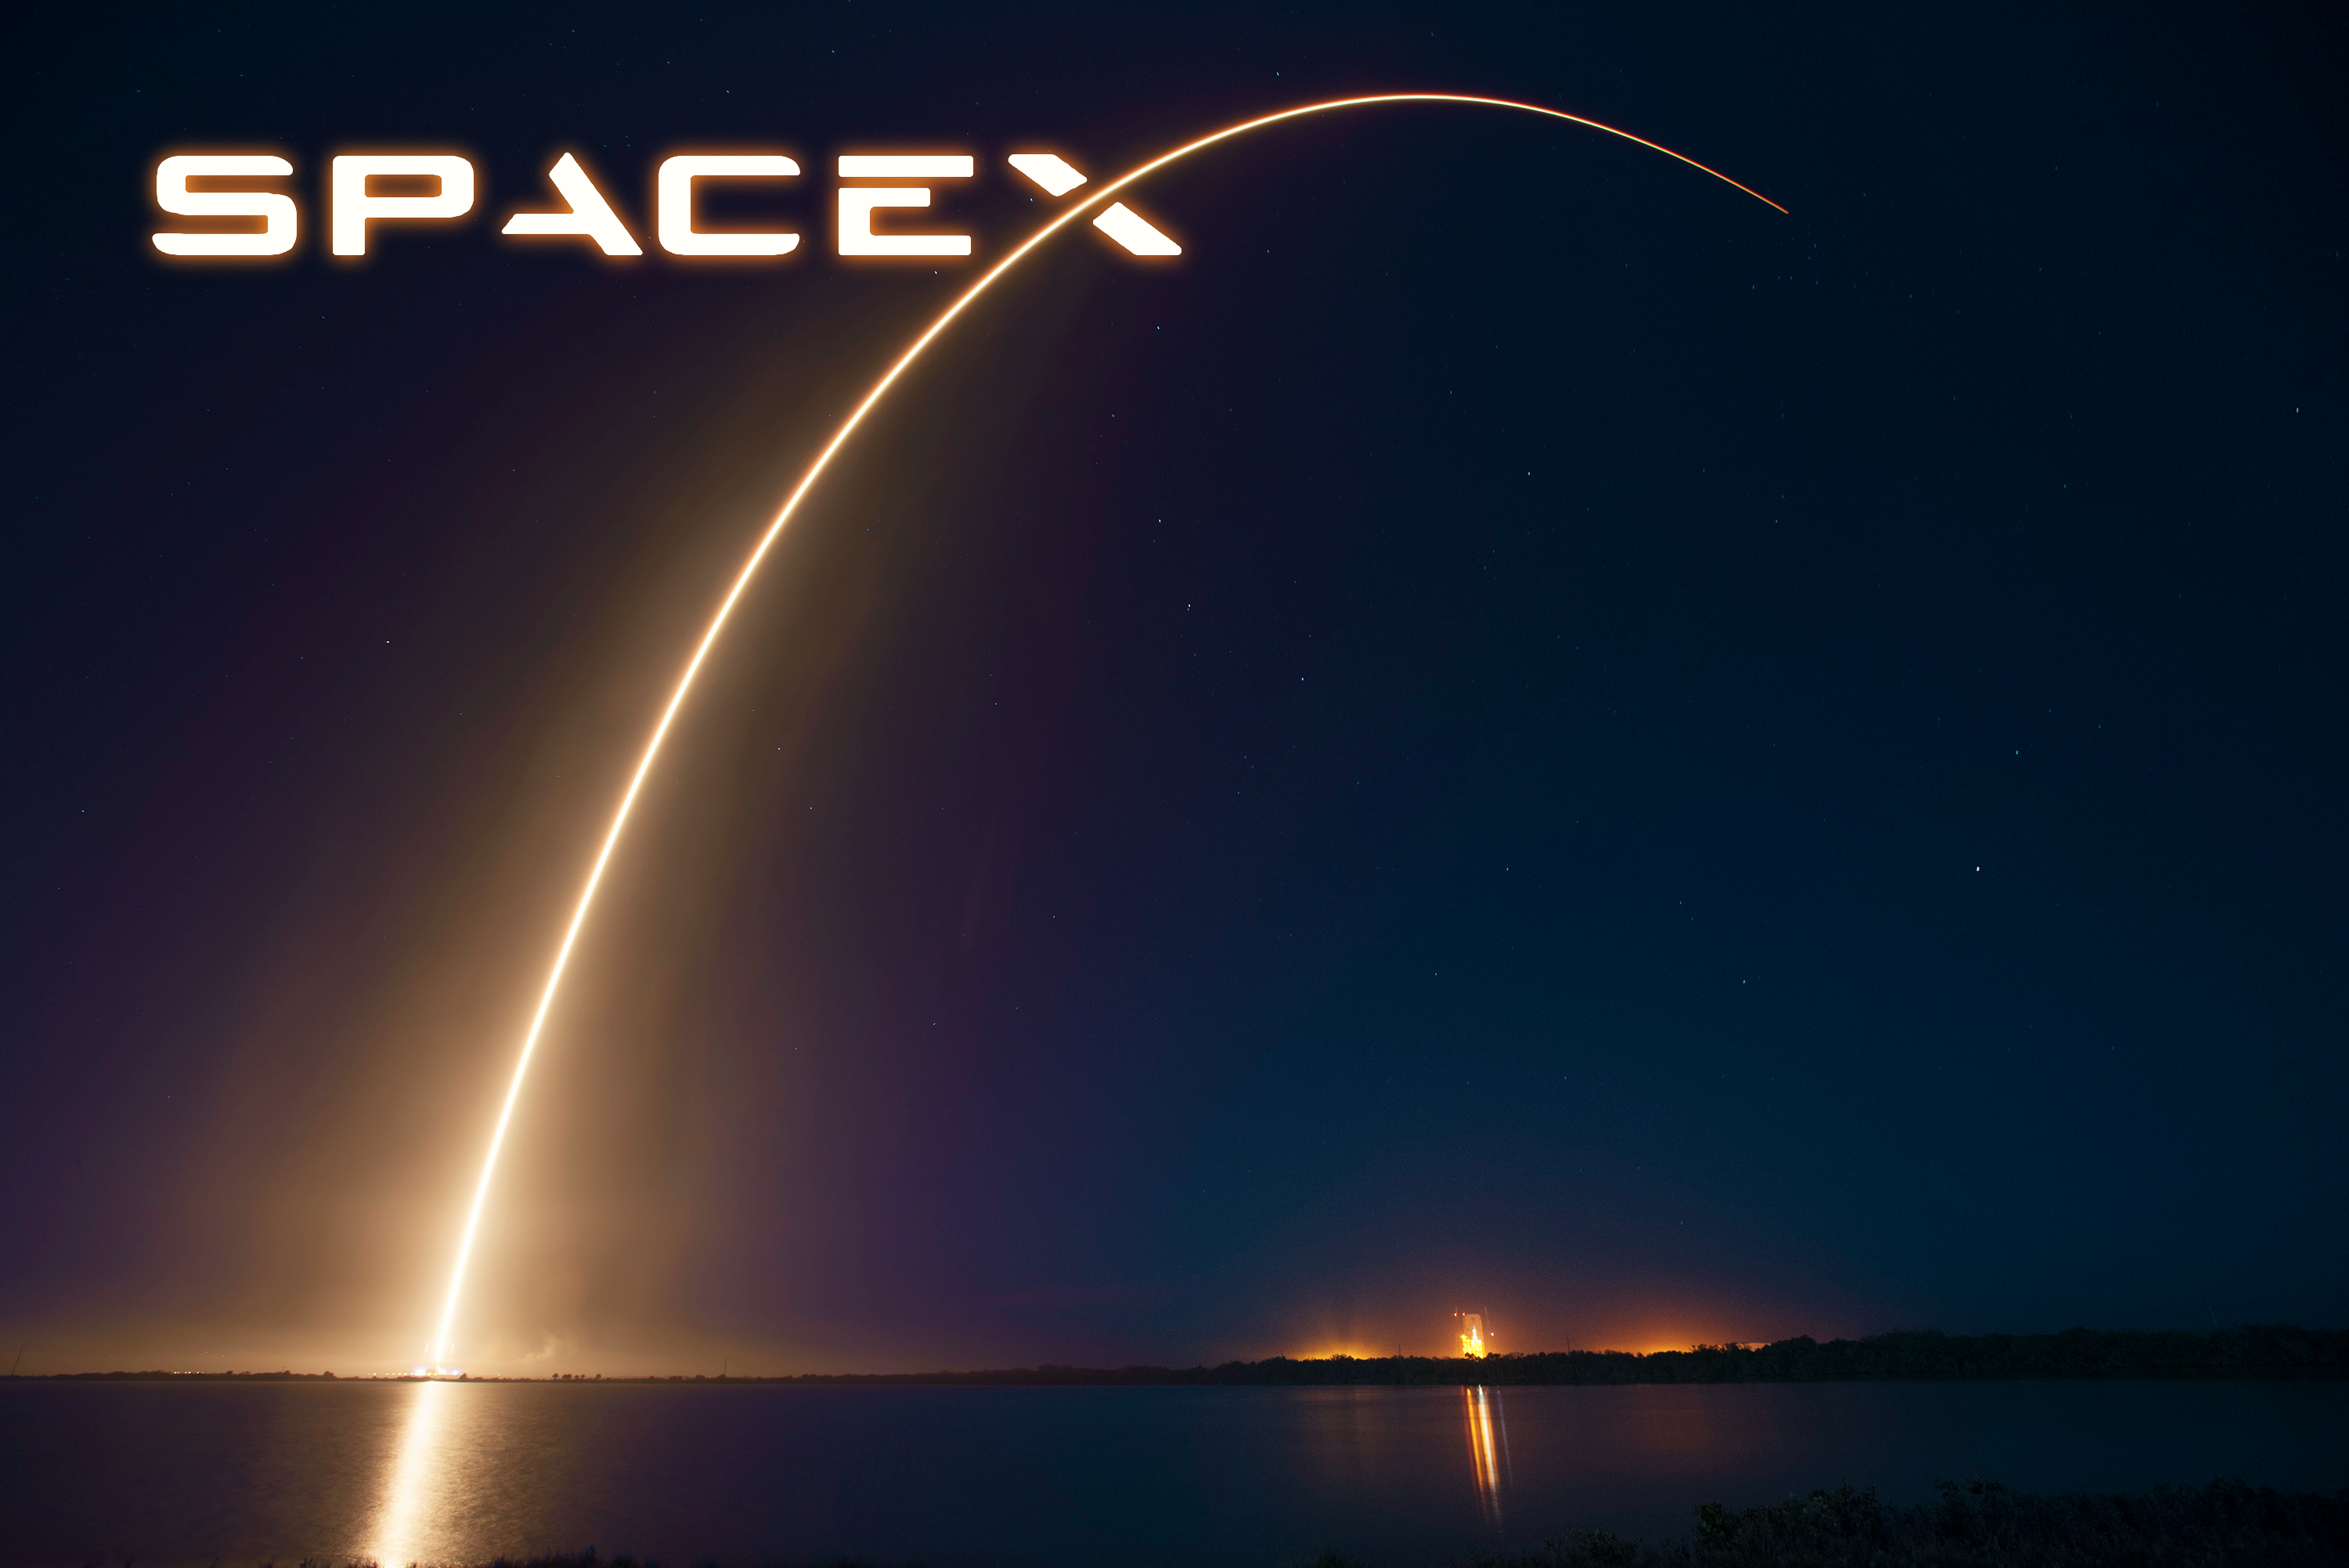 SpaceX HD Wallpaper Background Image 3000x2003 ID793064 3000x2003